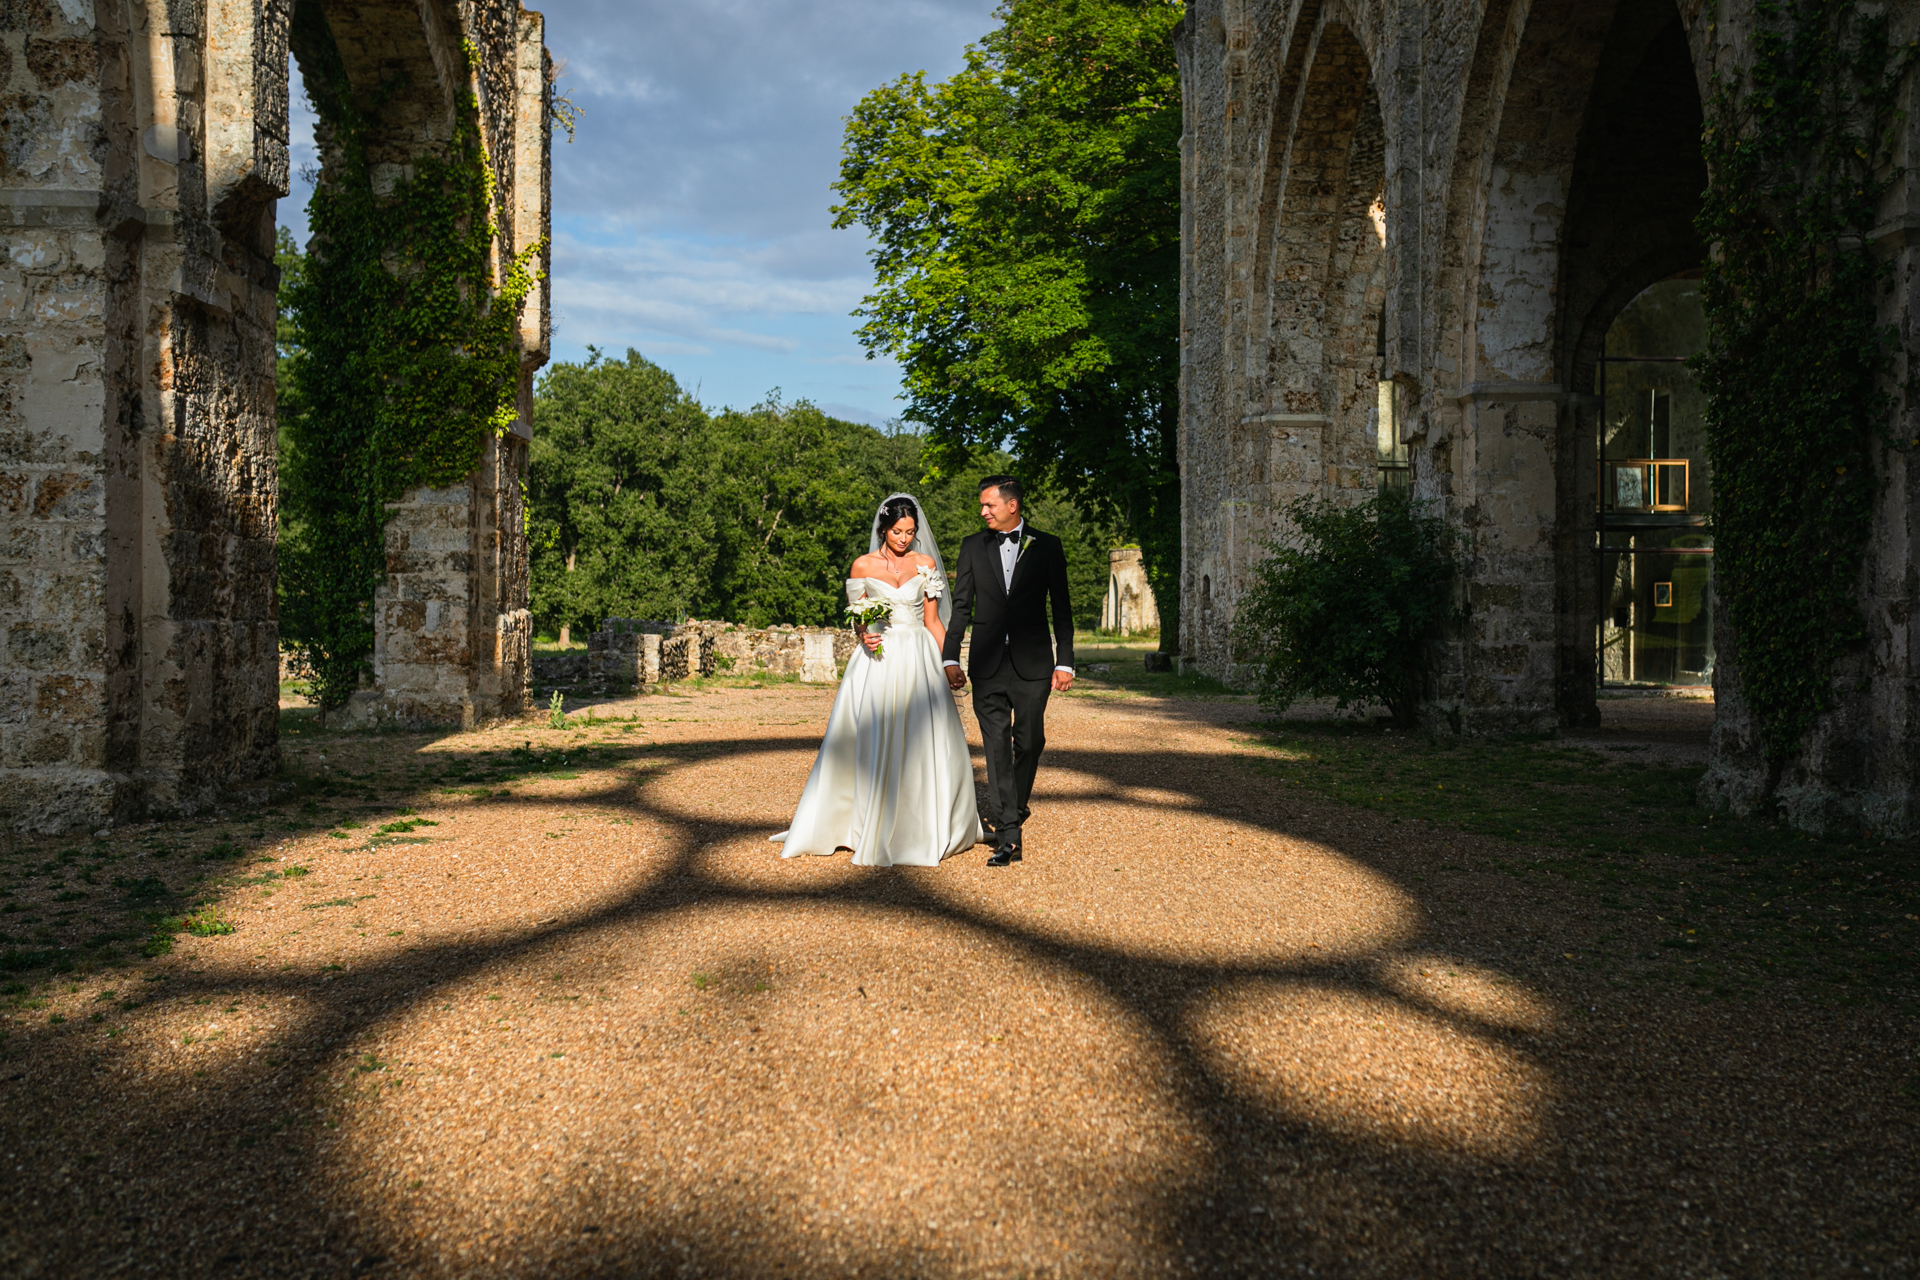 France Abbey Elopement Picture | The newlywed couple walks hand-in-hand through archways.